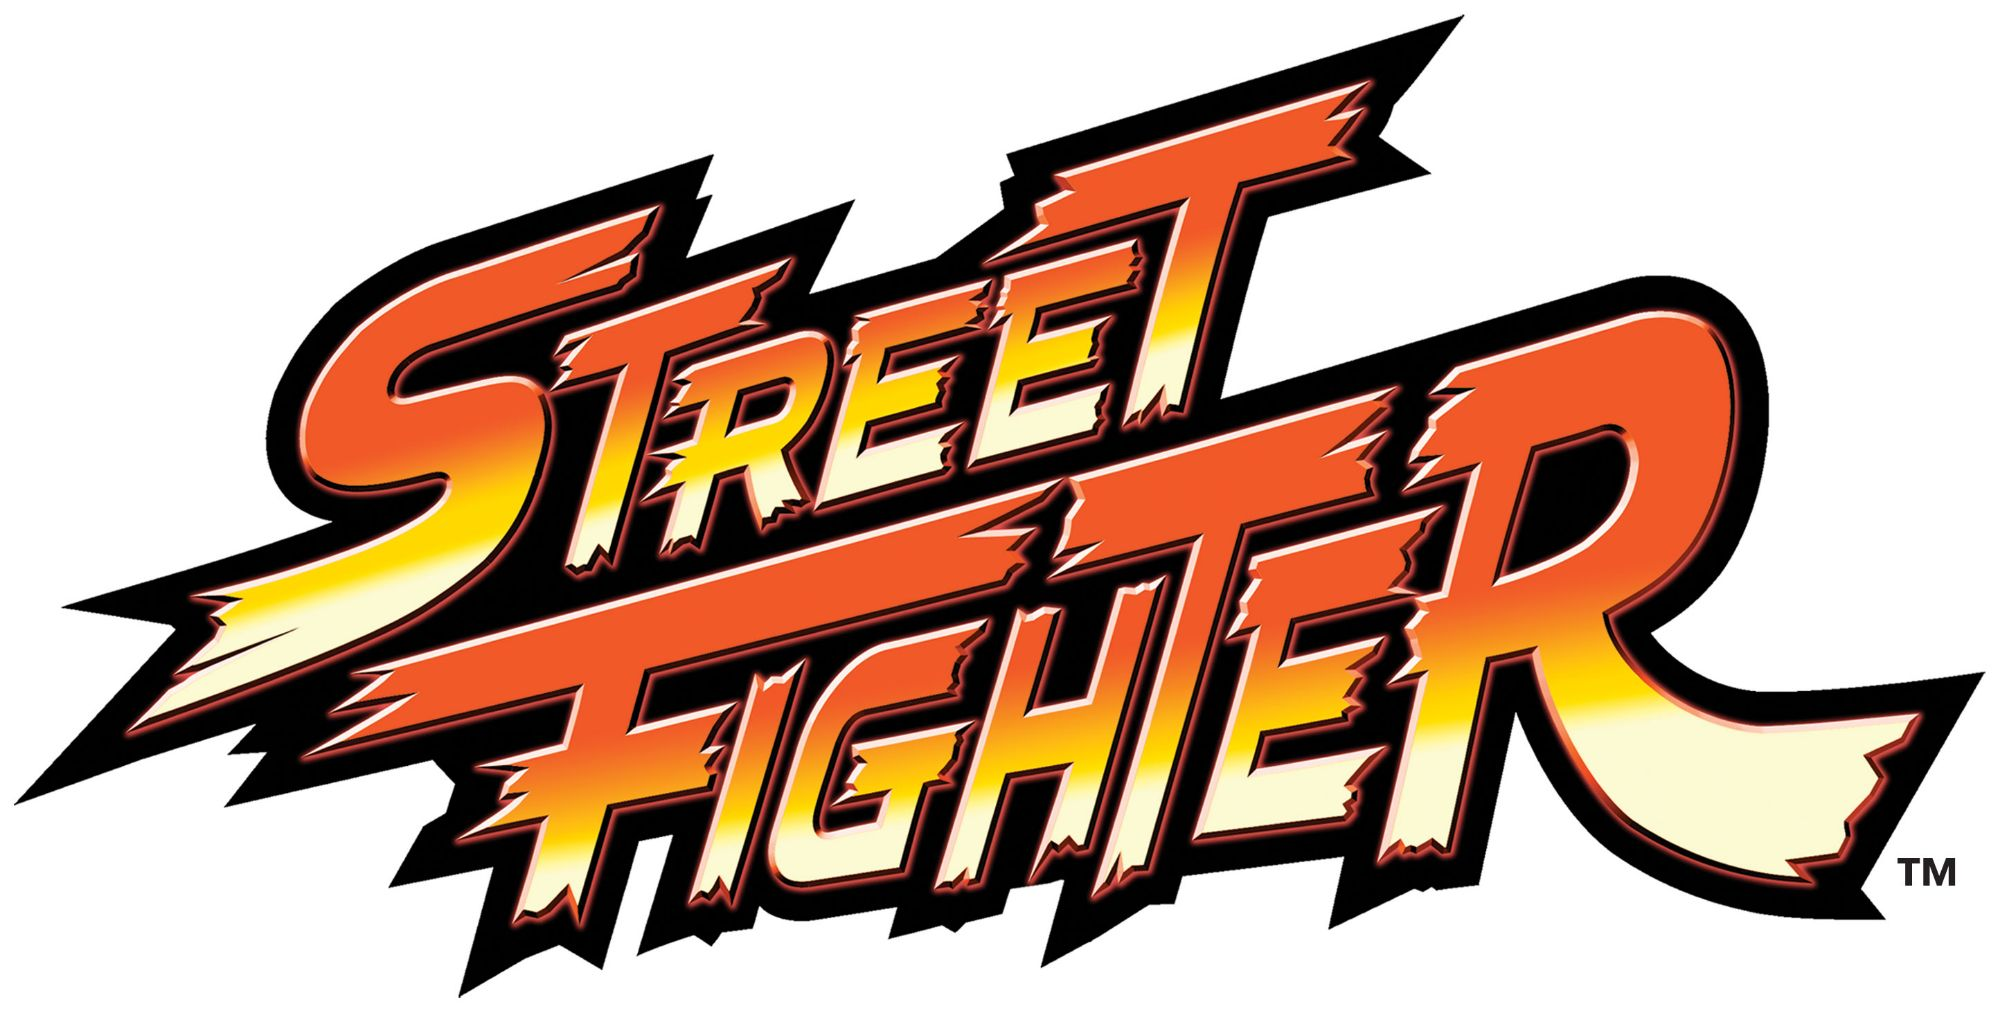 Street Fighter Dog and cat collars and bandanas